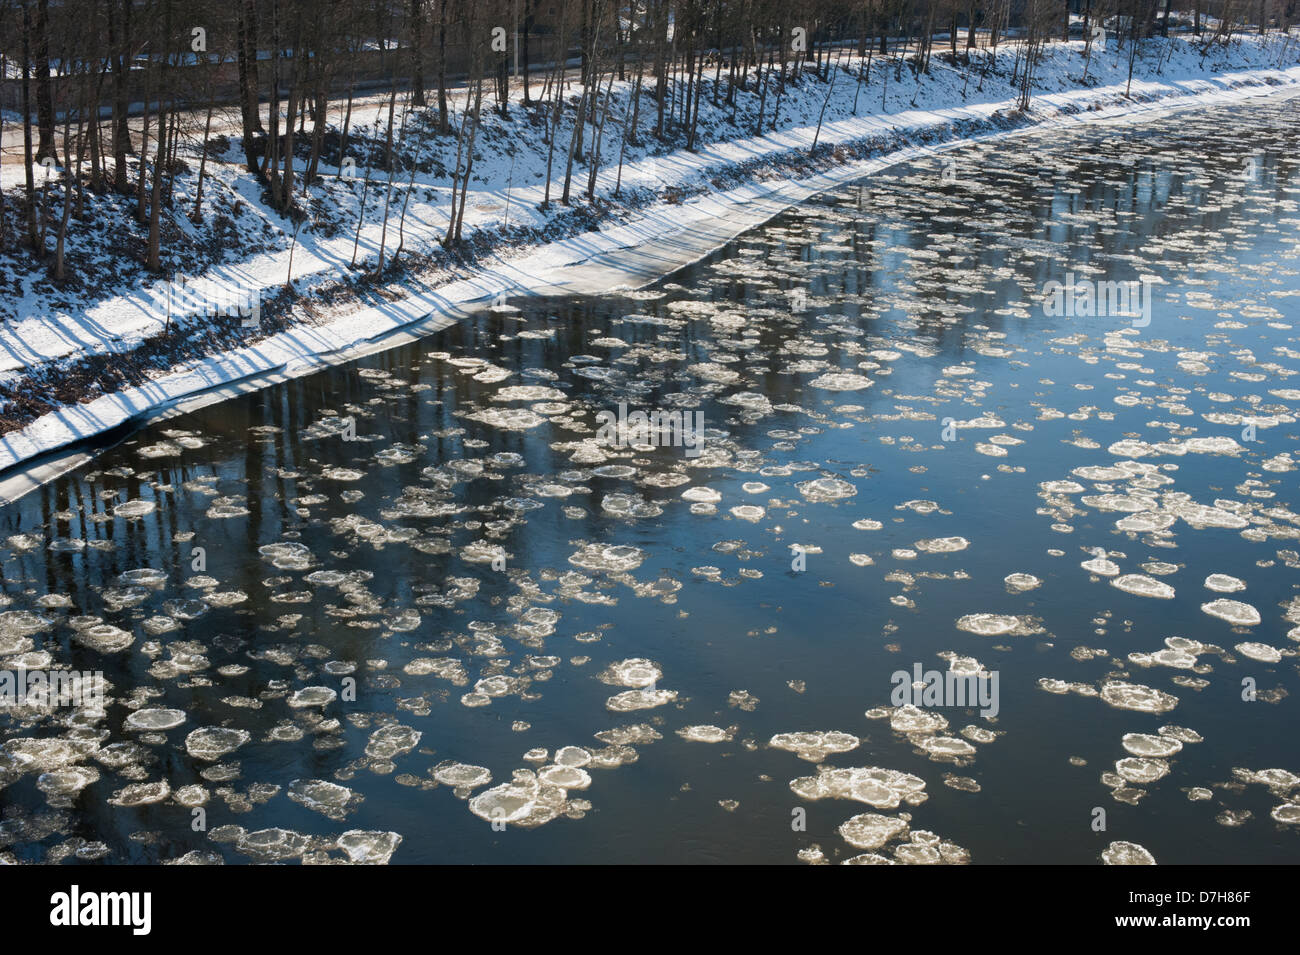 As Spring brings warmth to Lithuania, Ice bergs flow down the River Neris in Vilnius. - Stock Image